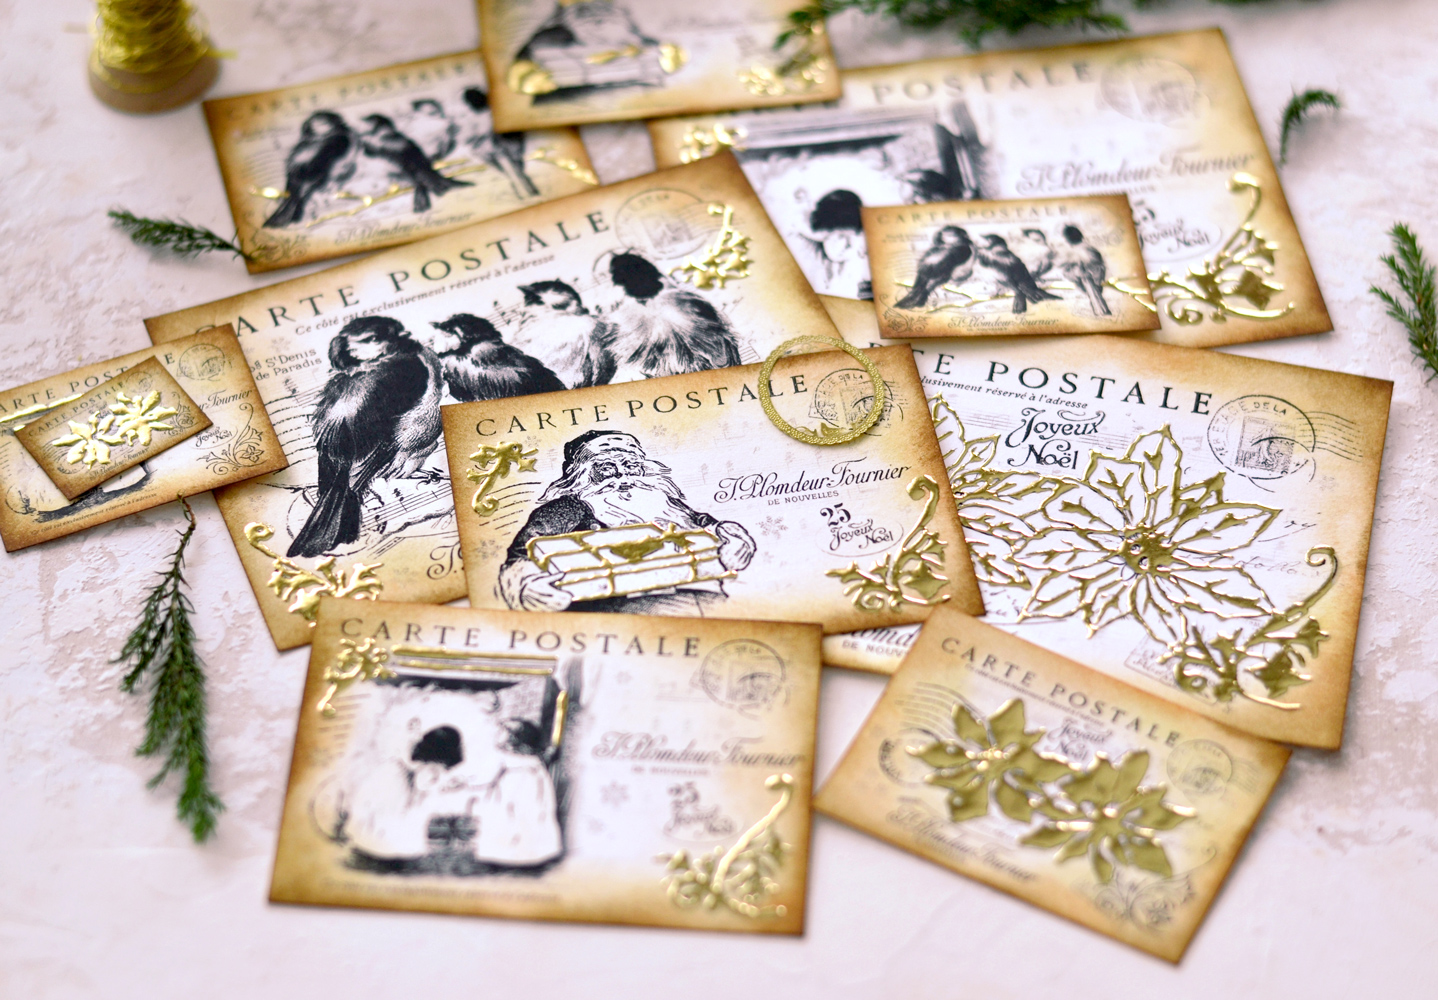 Revealing the final gold foil results for the DIY Gold Foil Christmas Postcards project!